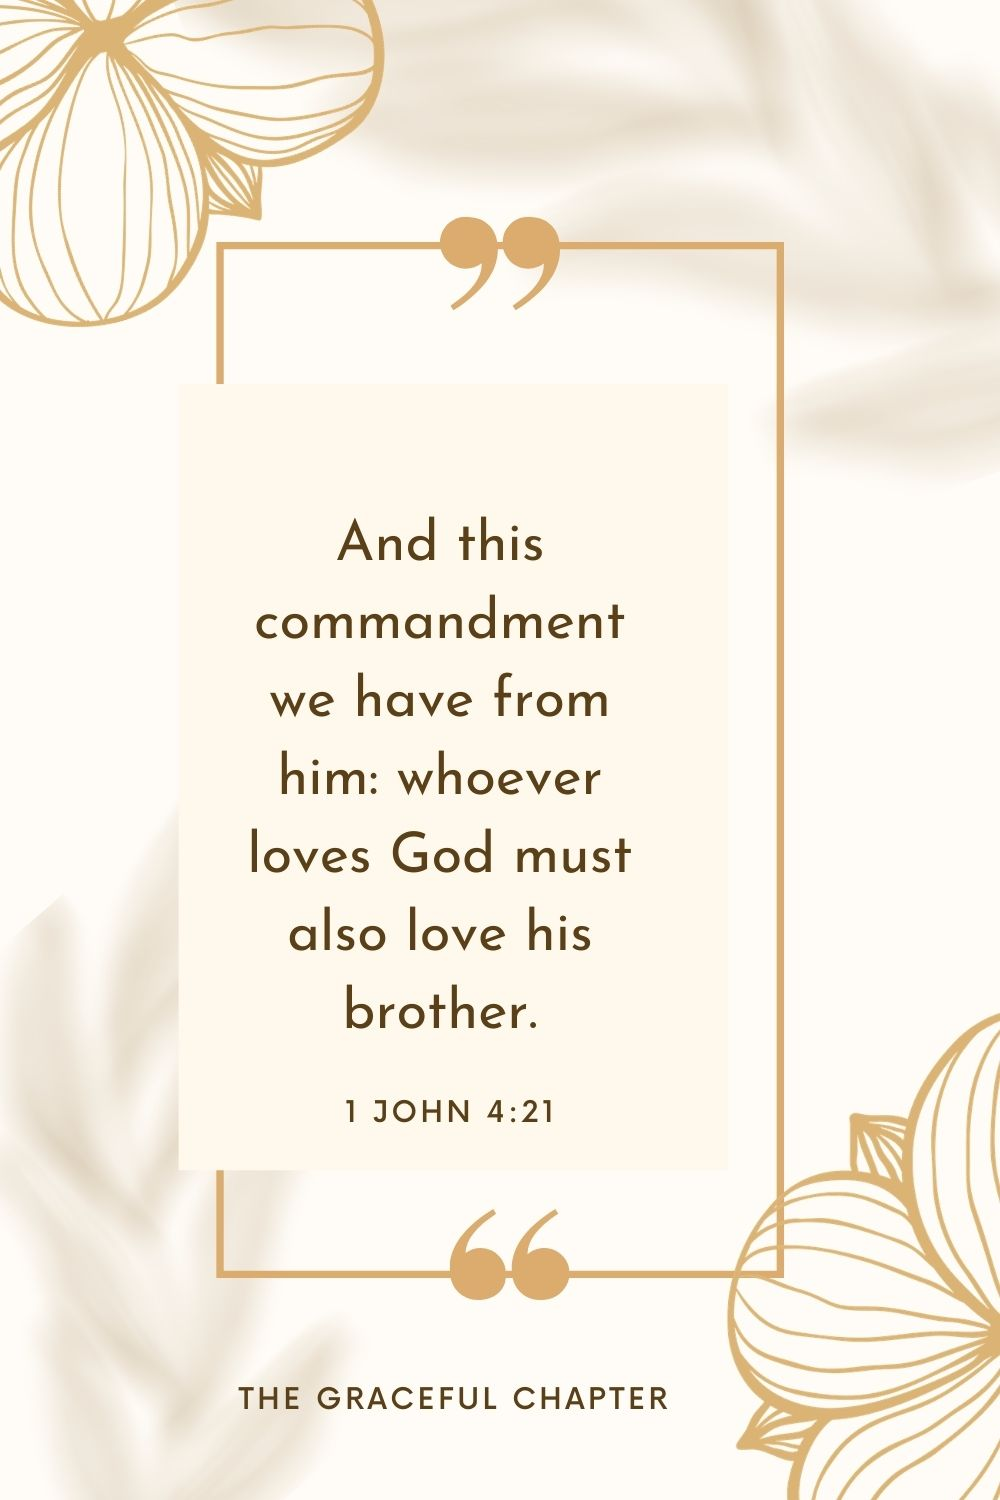 And this commandment we have from him: whoever loves God must also love his brother. 1 John 4:21